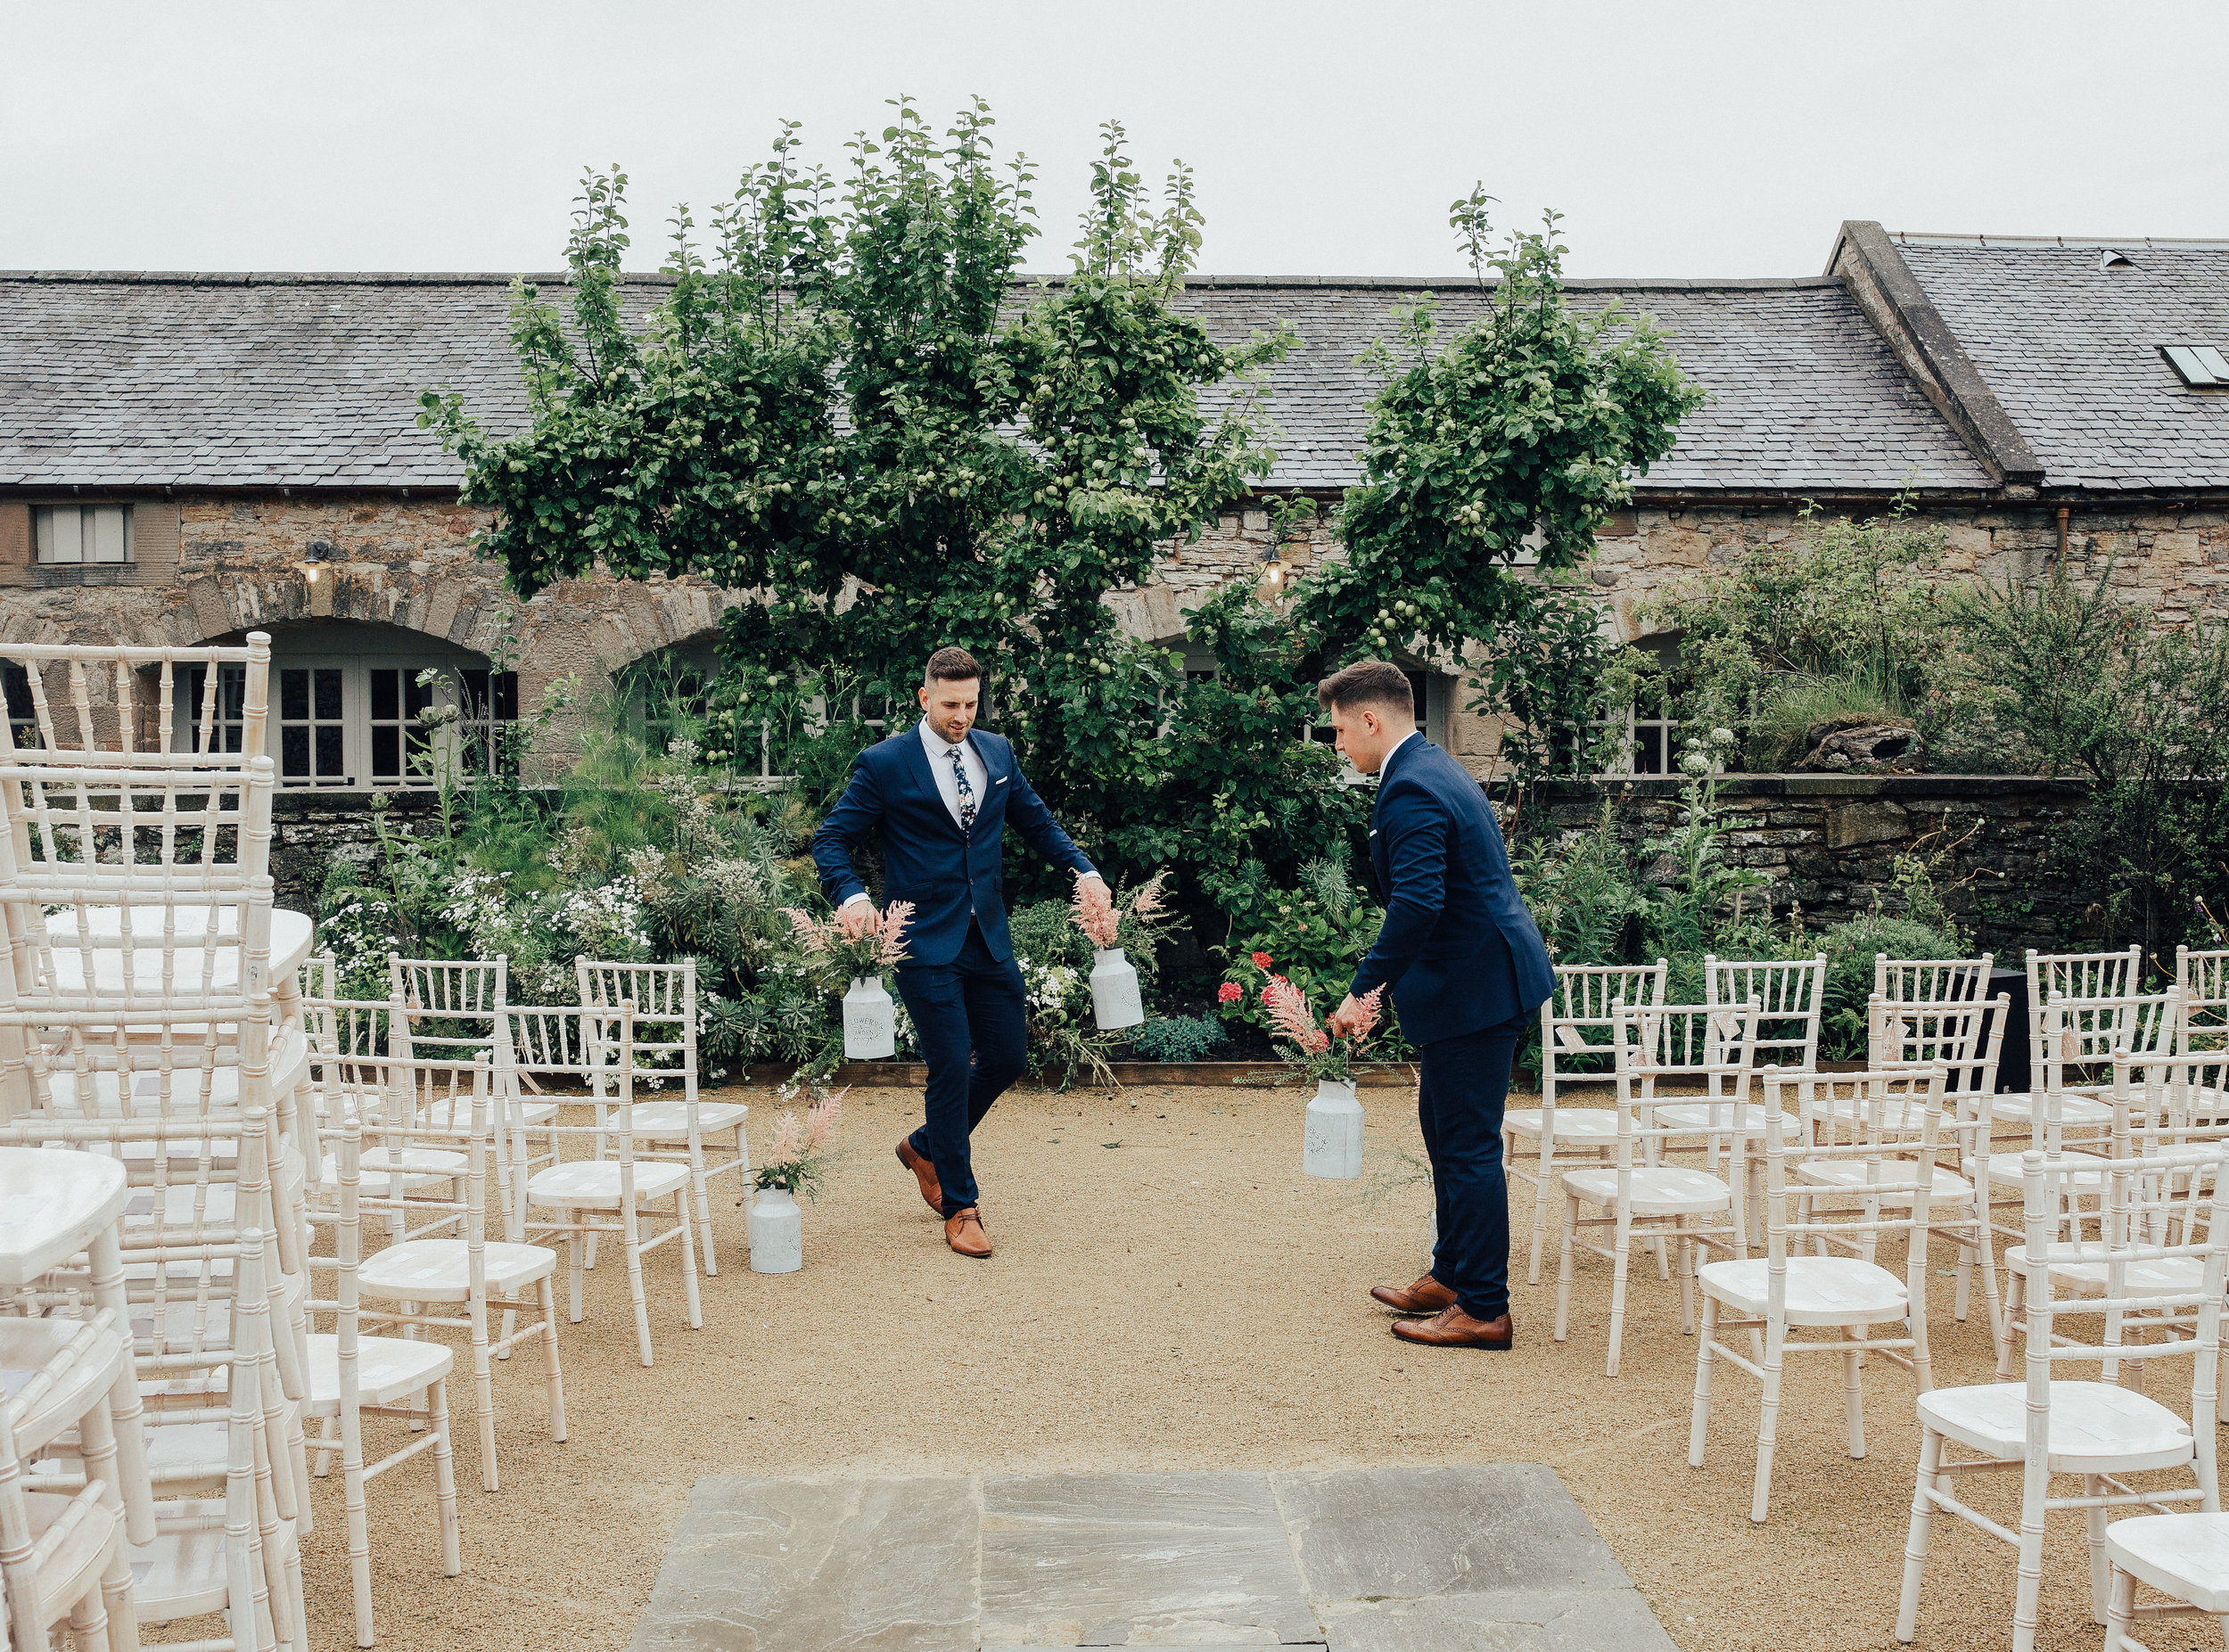 PJ_PHILLIPS_PHOTOGRAPHY_EDINBURGH_WEDDERBURN_BARNS_WEDDING_EDINBURGH_WEDDING_PHOTOGRAPHER_30.jpg